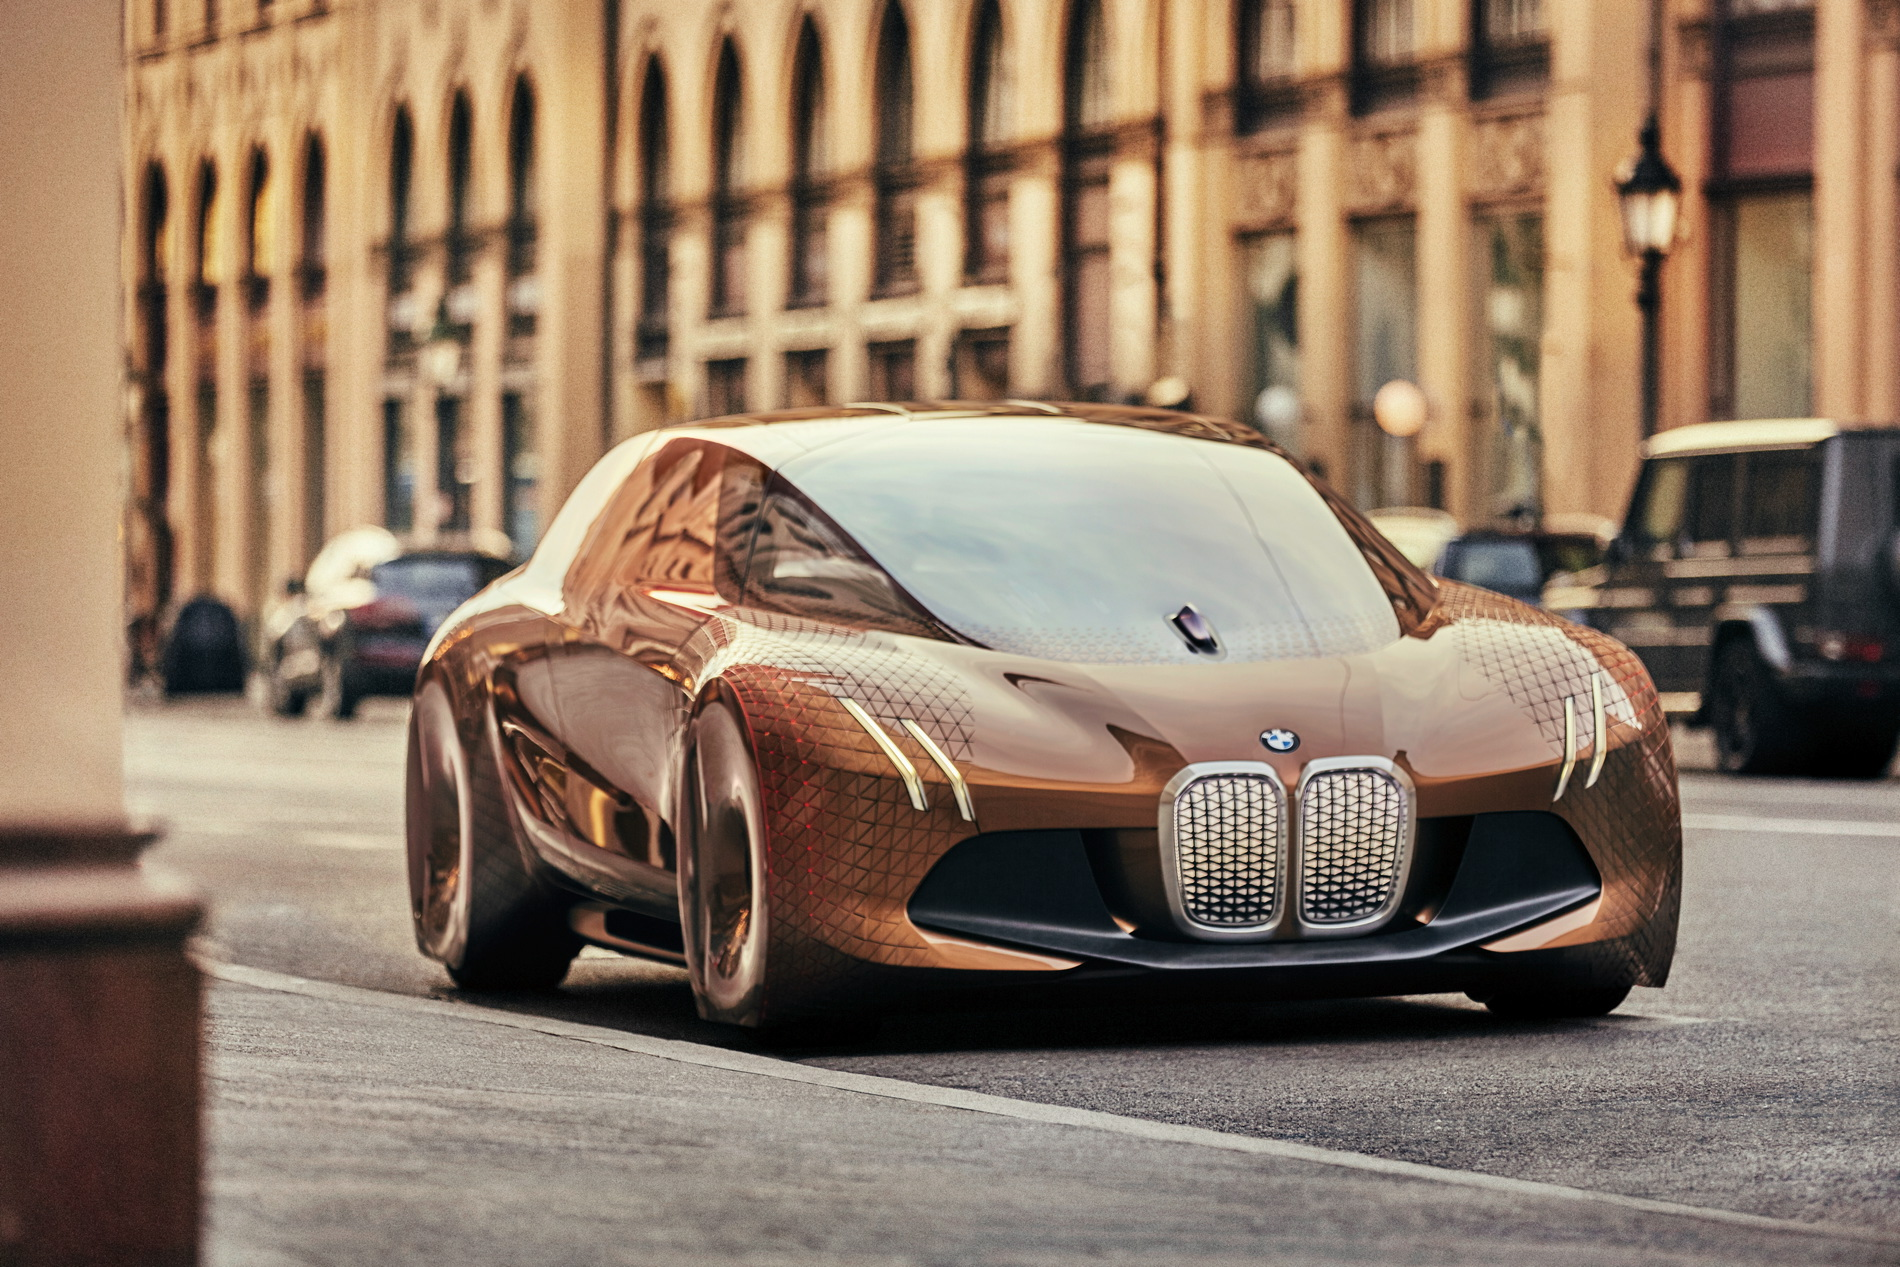 BMW Vision Next 100 images 126